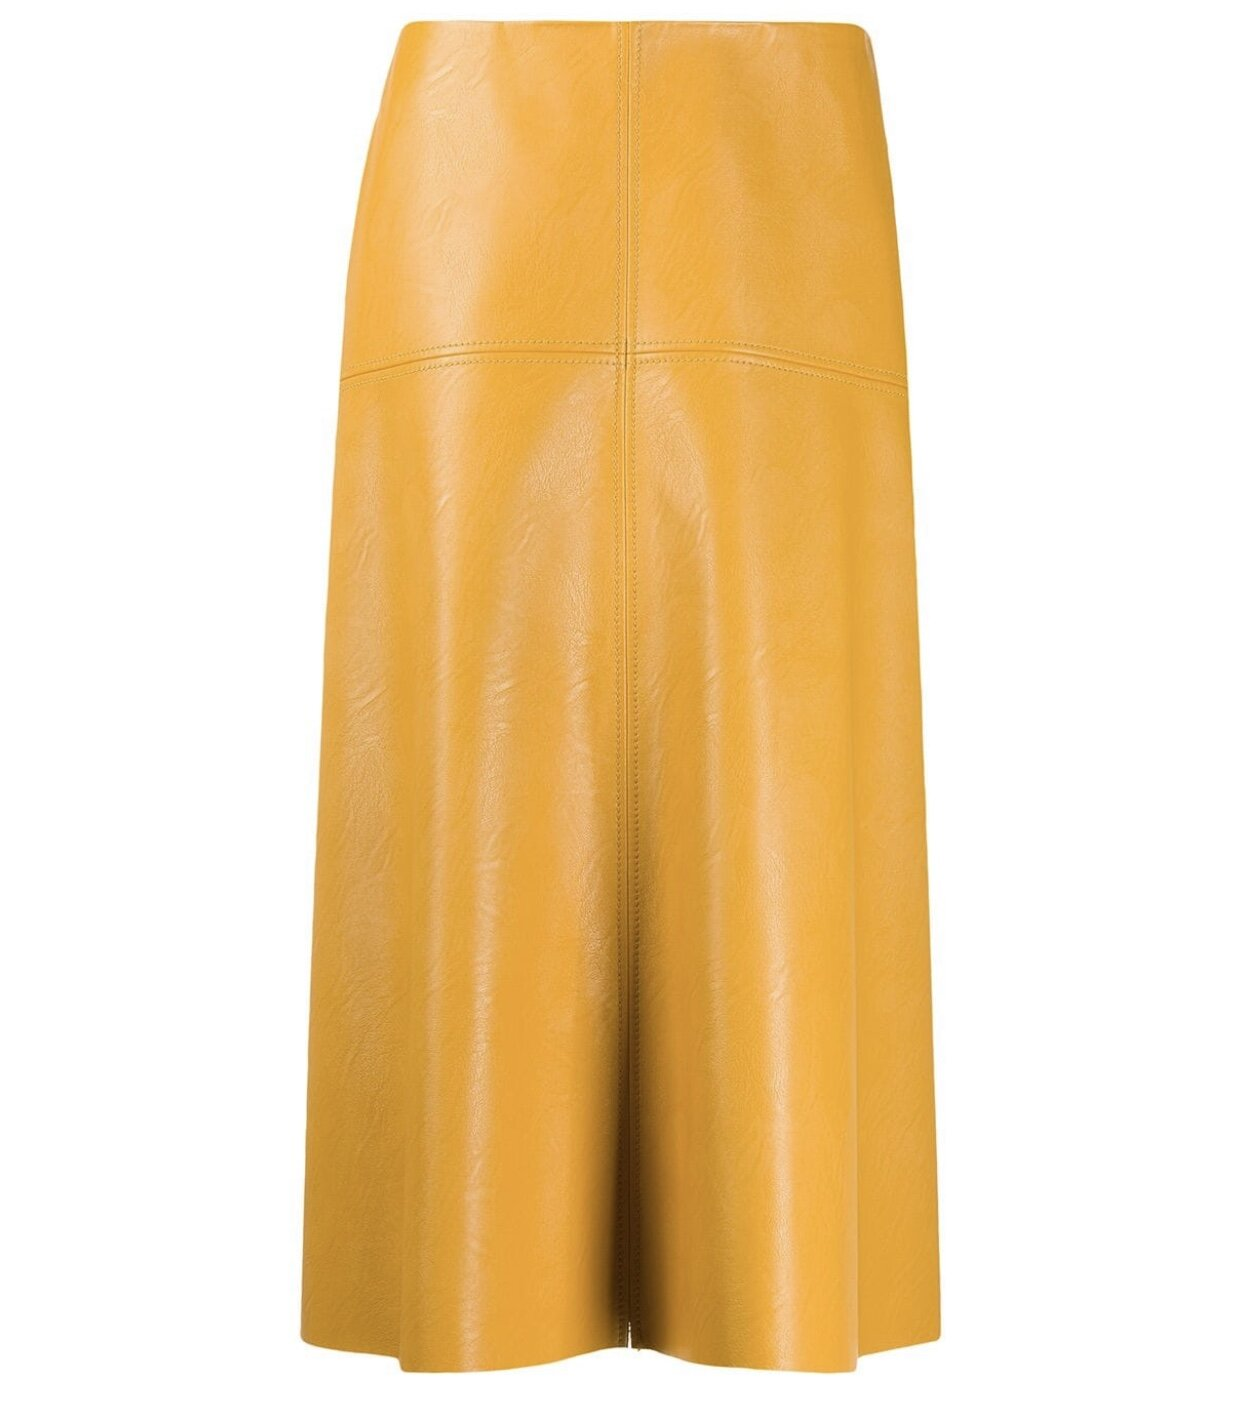 STELLA McCARTNEY - FAUX LEATHER SKIRT